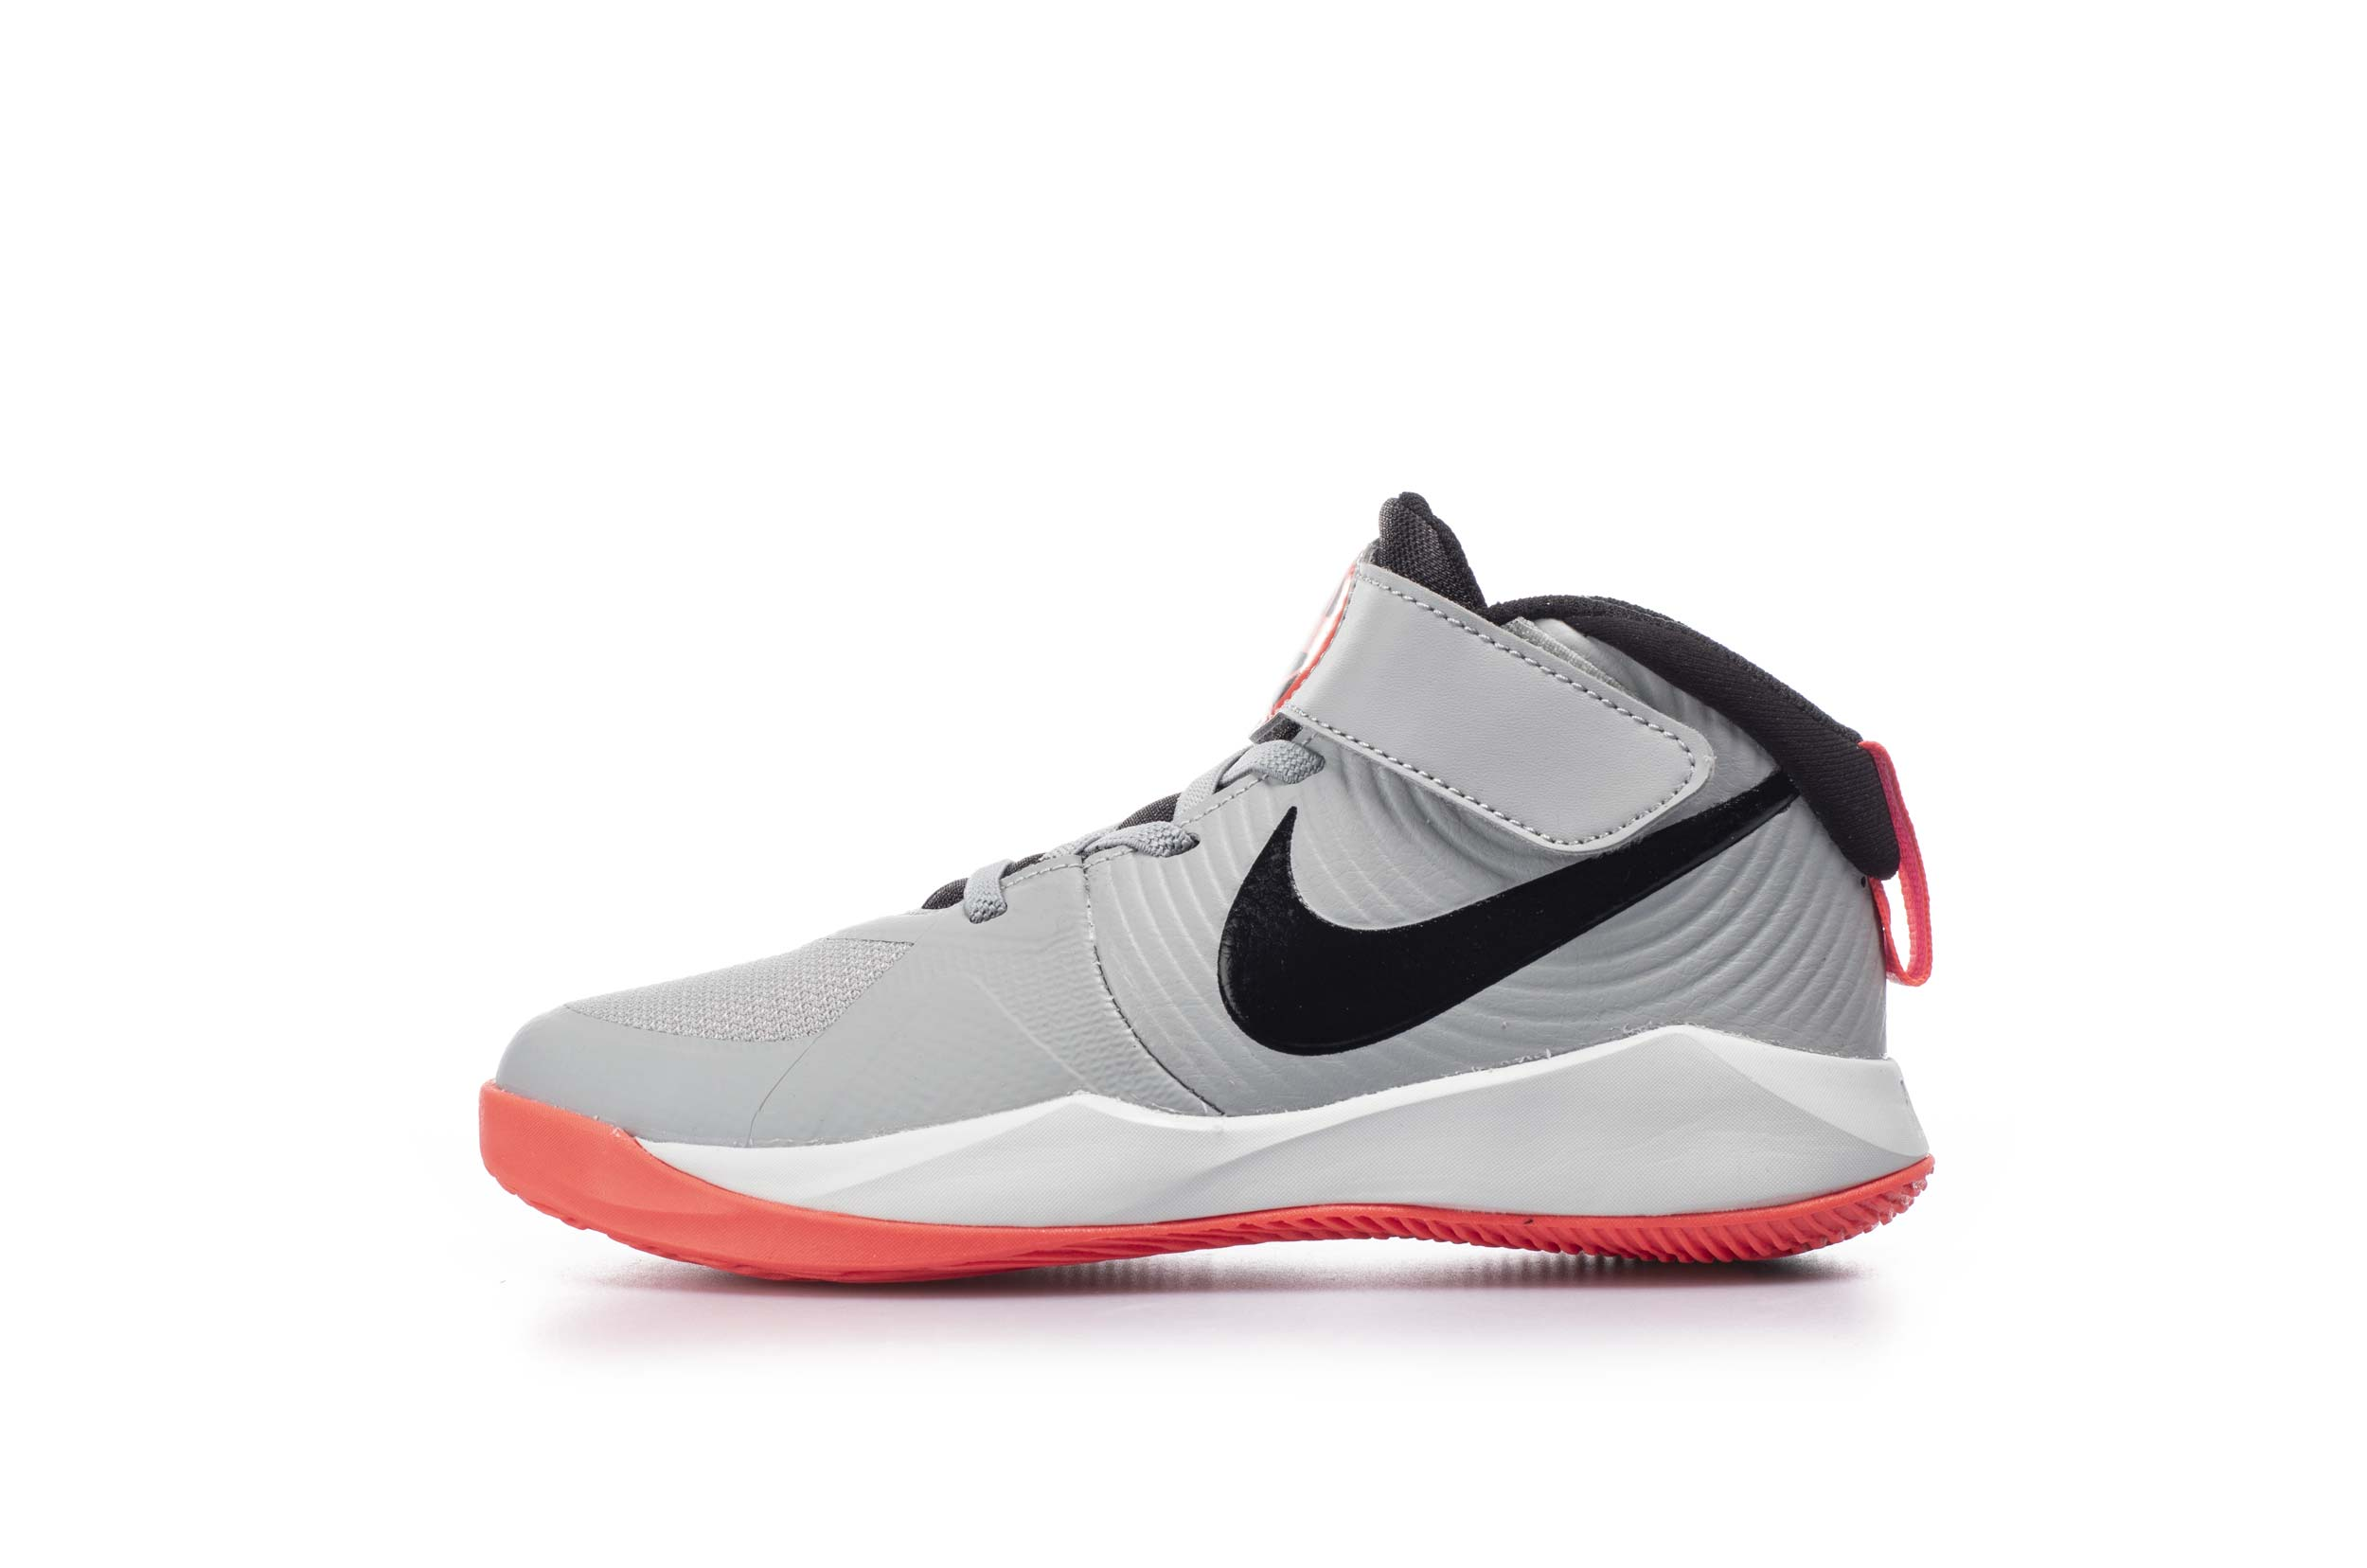 NIKE TEAM HUSTLE D 9 PS AQ4225-007 Γκρί